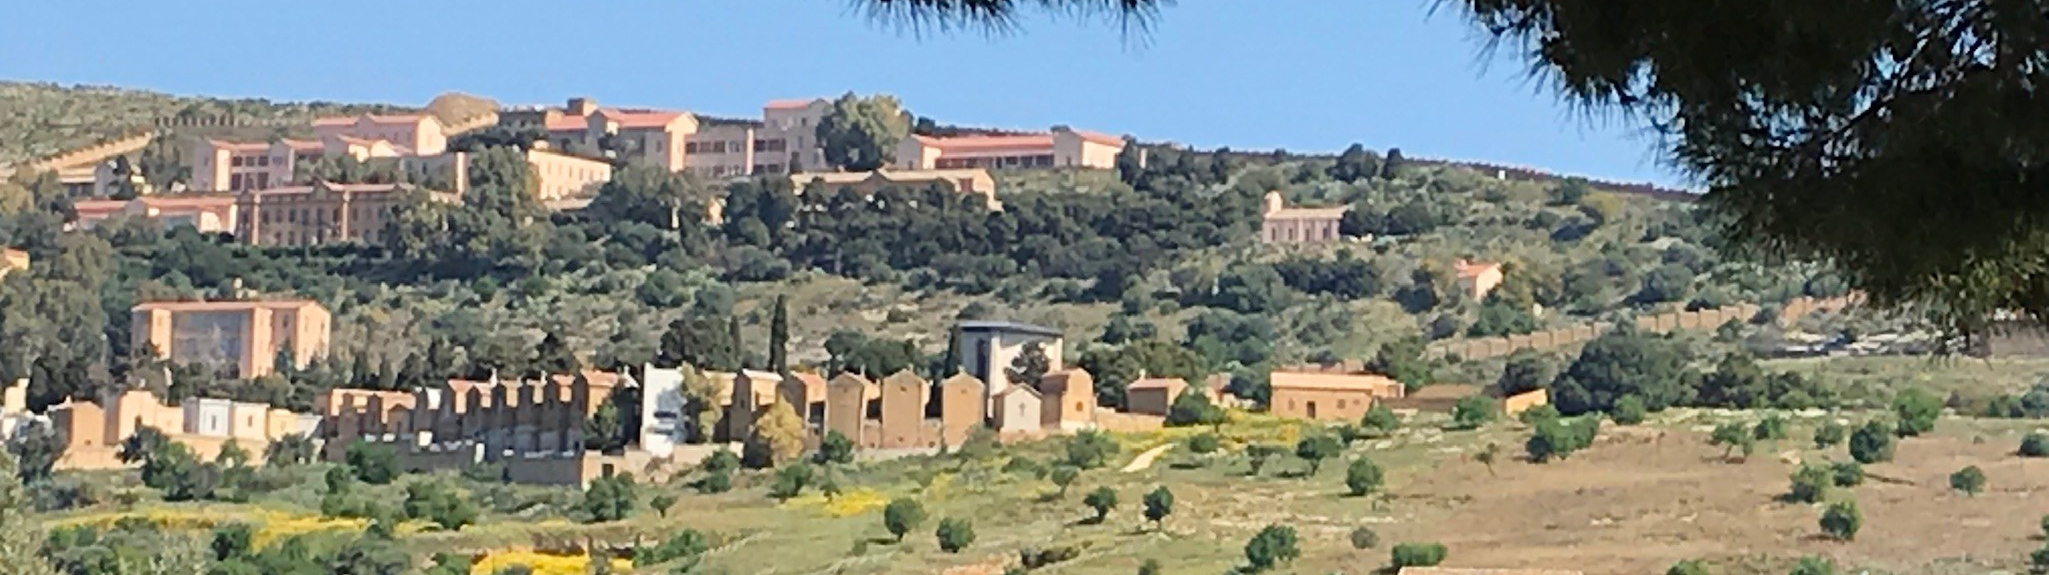 Agrigento's Valley of the Temples, with a Pit Stop in Noto